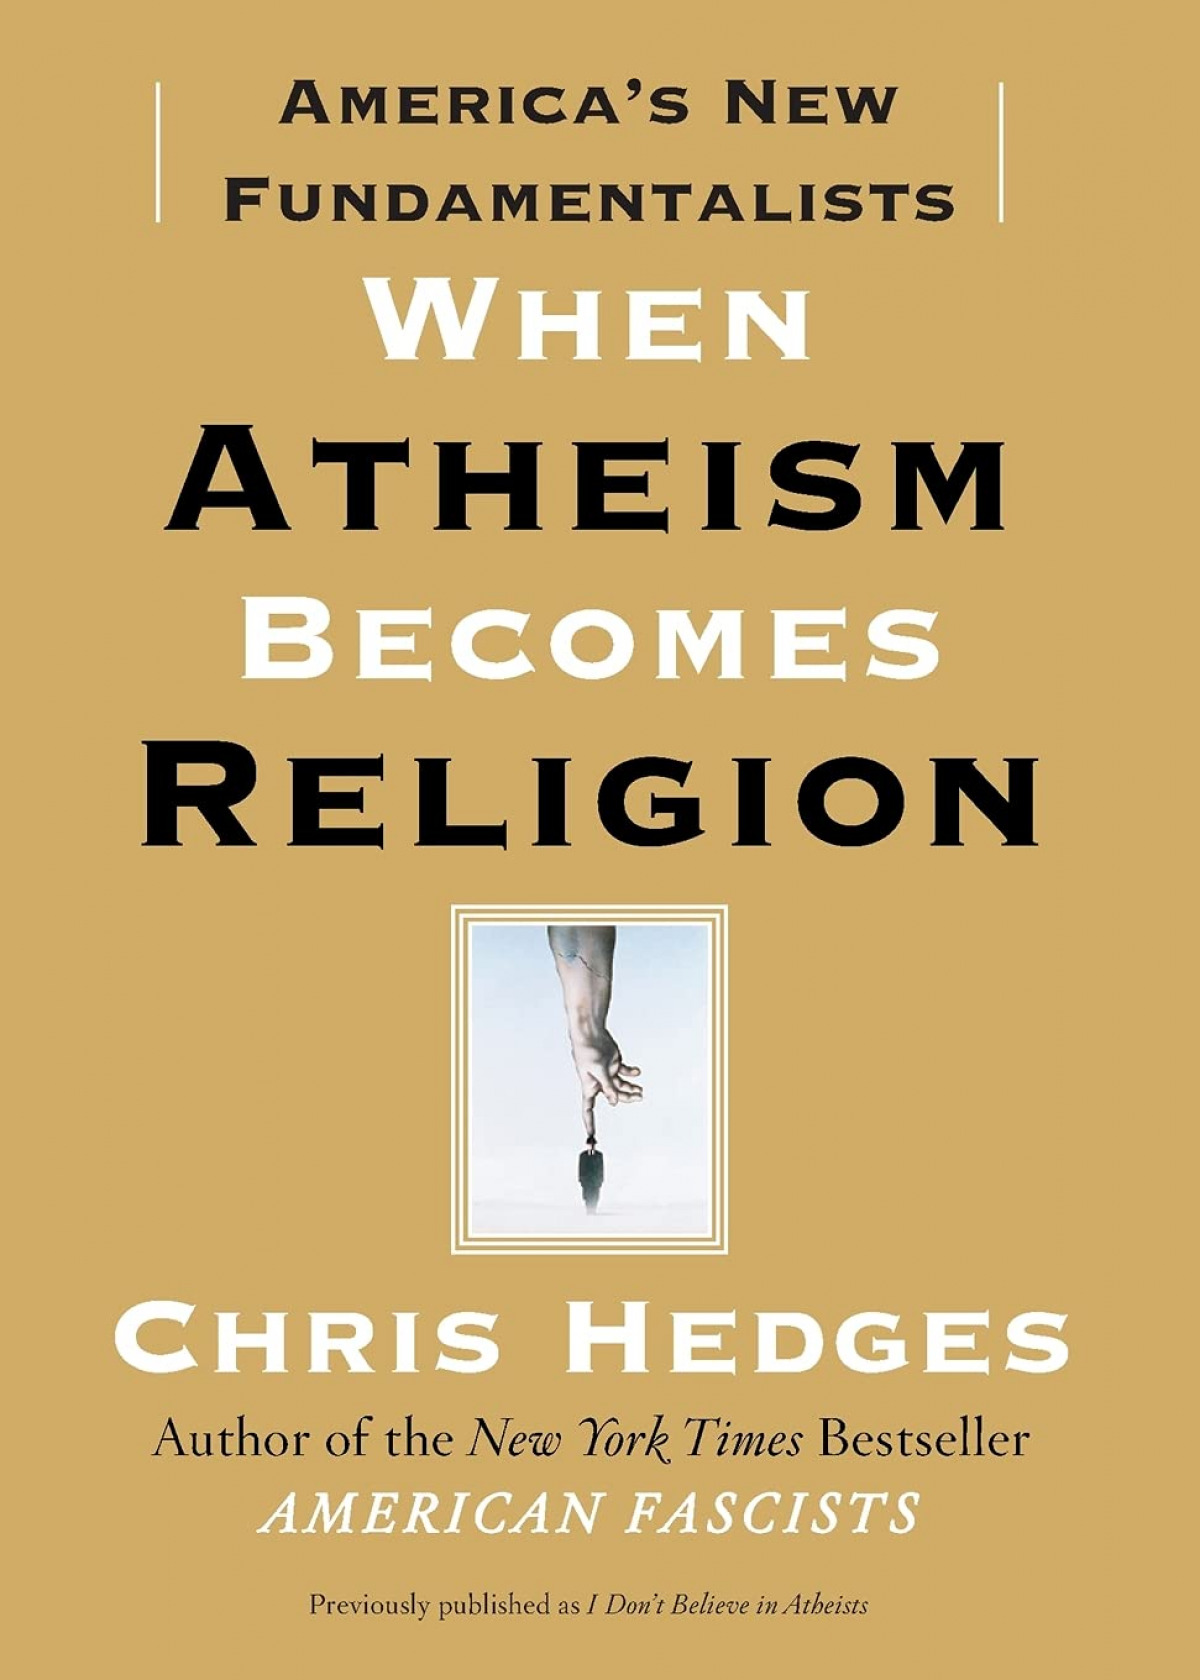 WHEN ATHEISM BECOMES RELIGION:AMERICA'S NEW FUNDAMENTALISTS